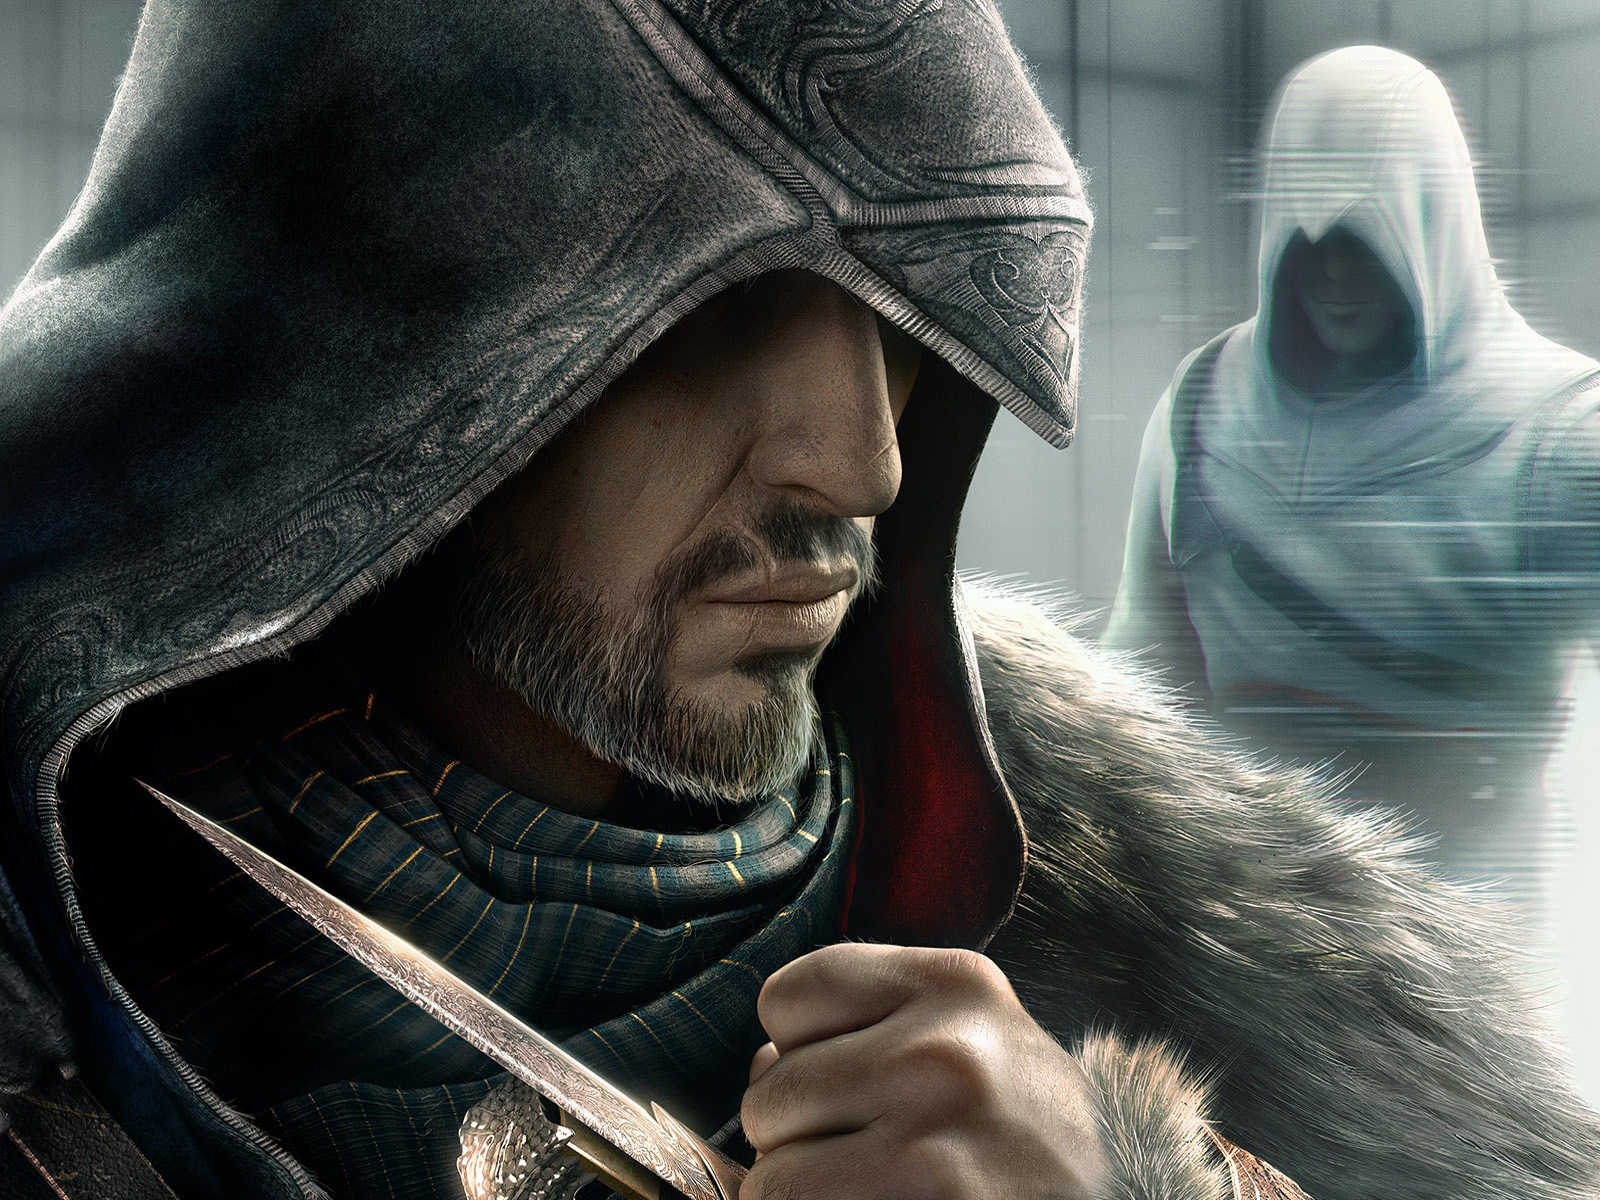 assassins creed Ezio revelations HD Wallpaper